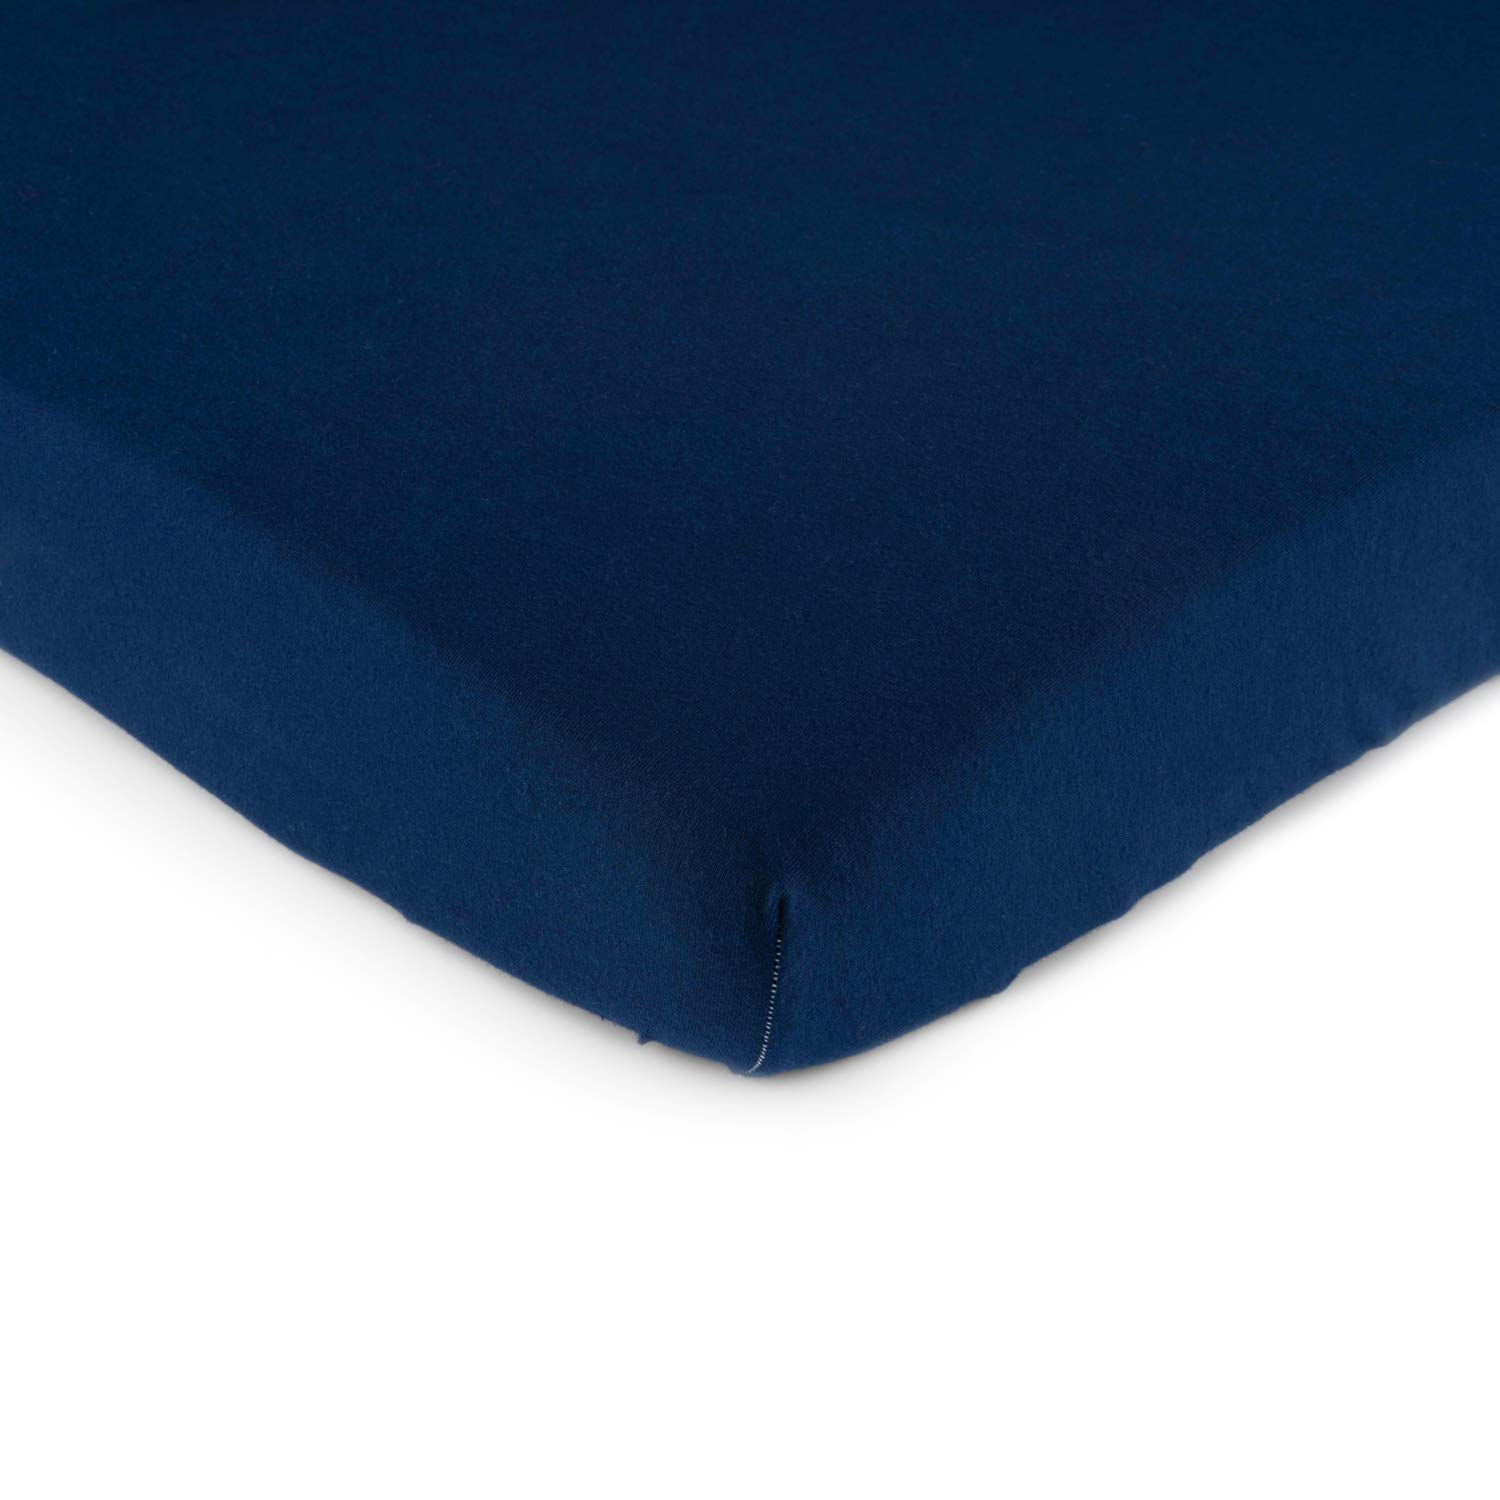 SheetWorld Fitted Bassinet Sheet - Solid Navy Jersey Knit - Made In USA, 15 x 33